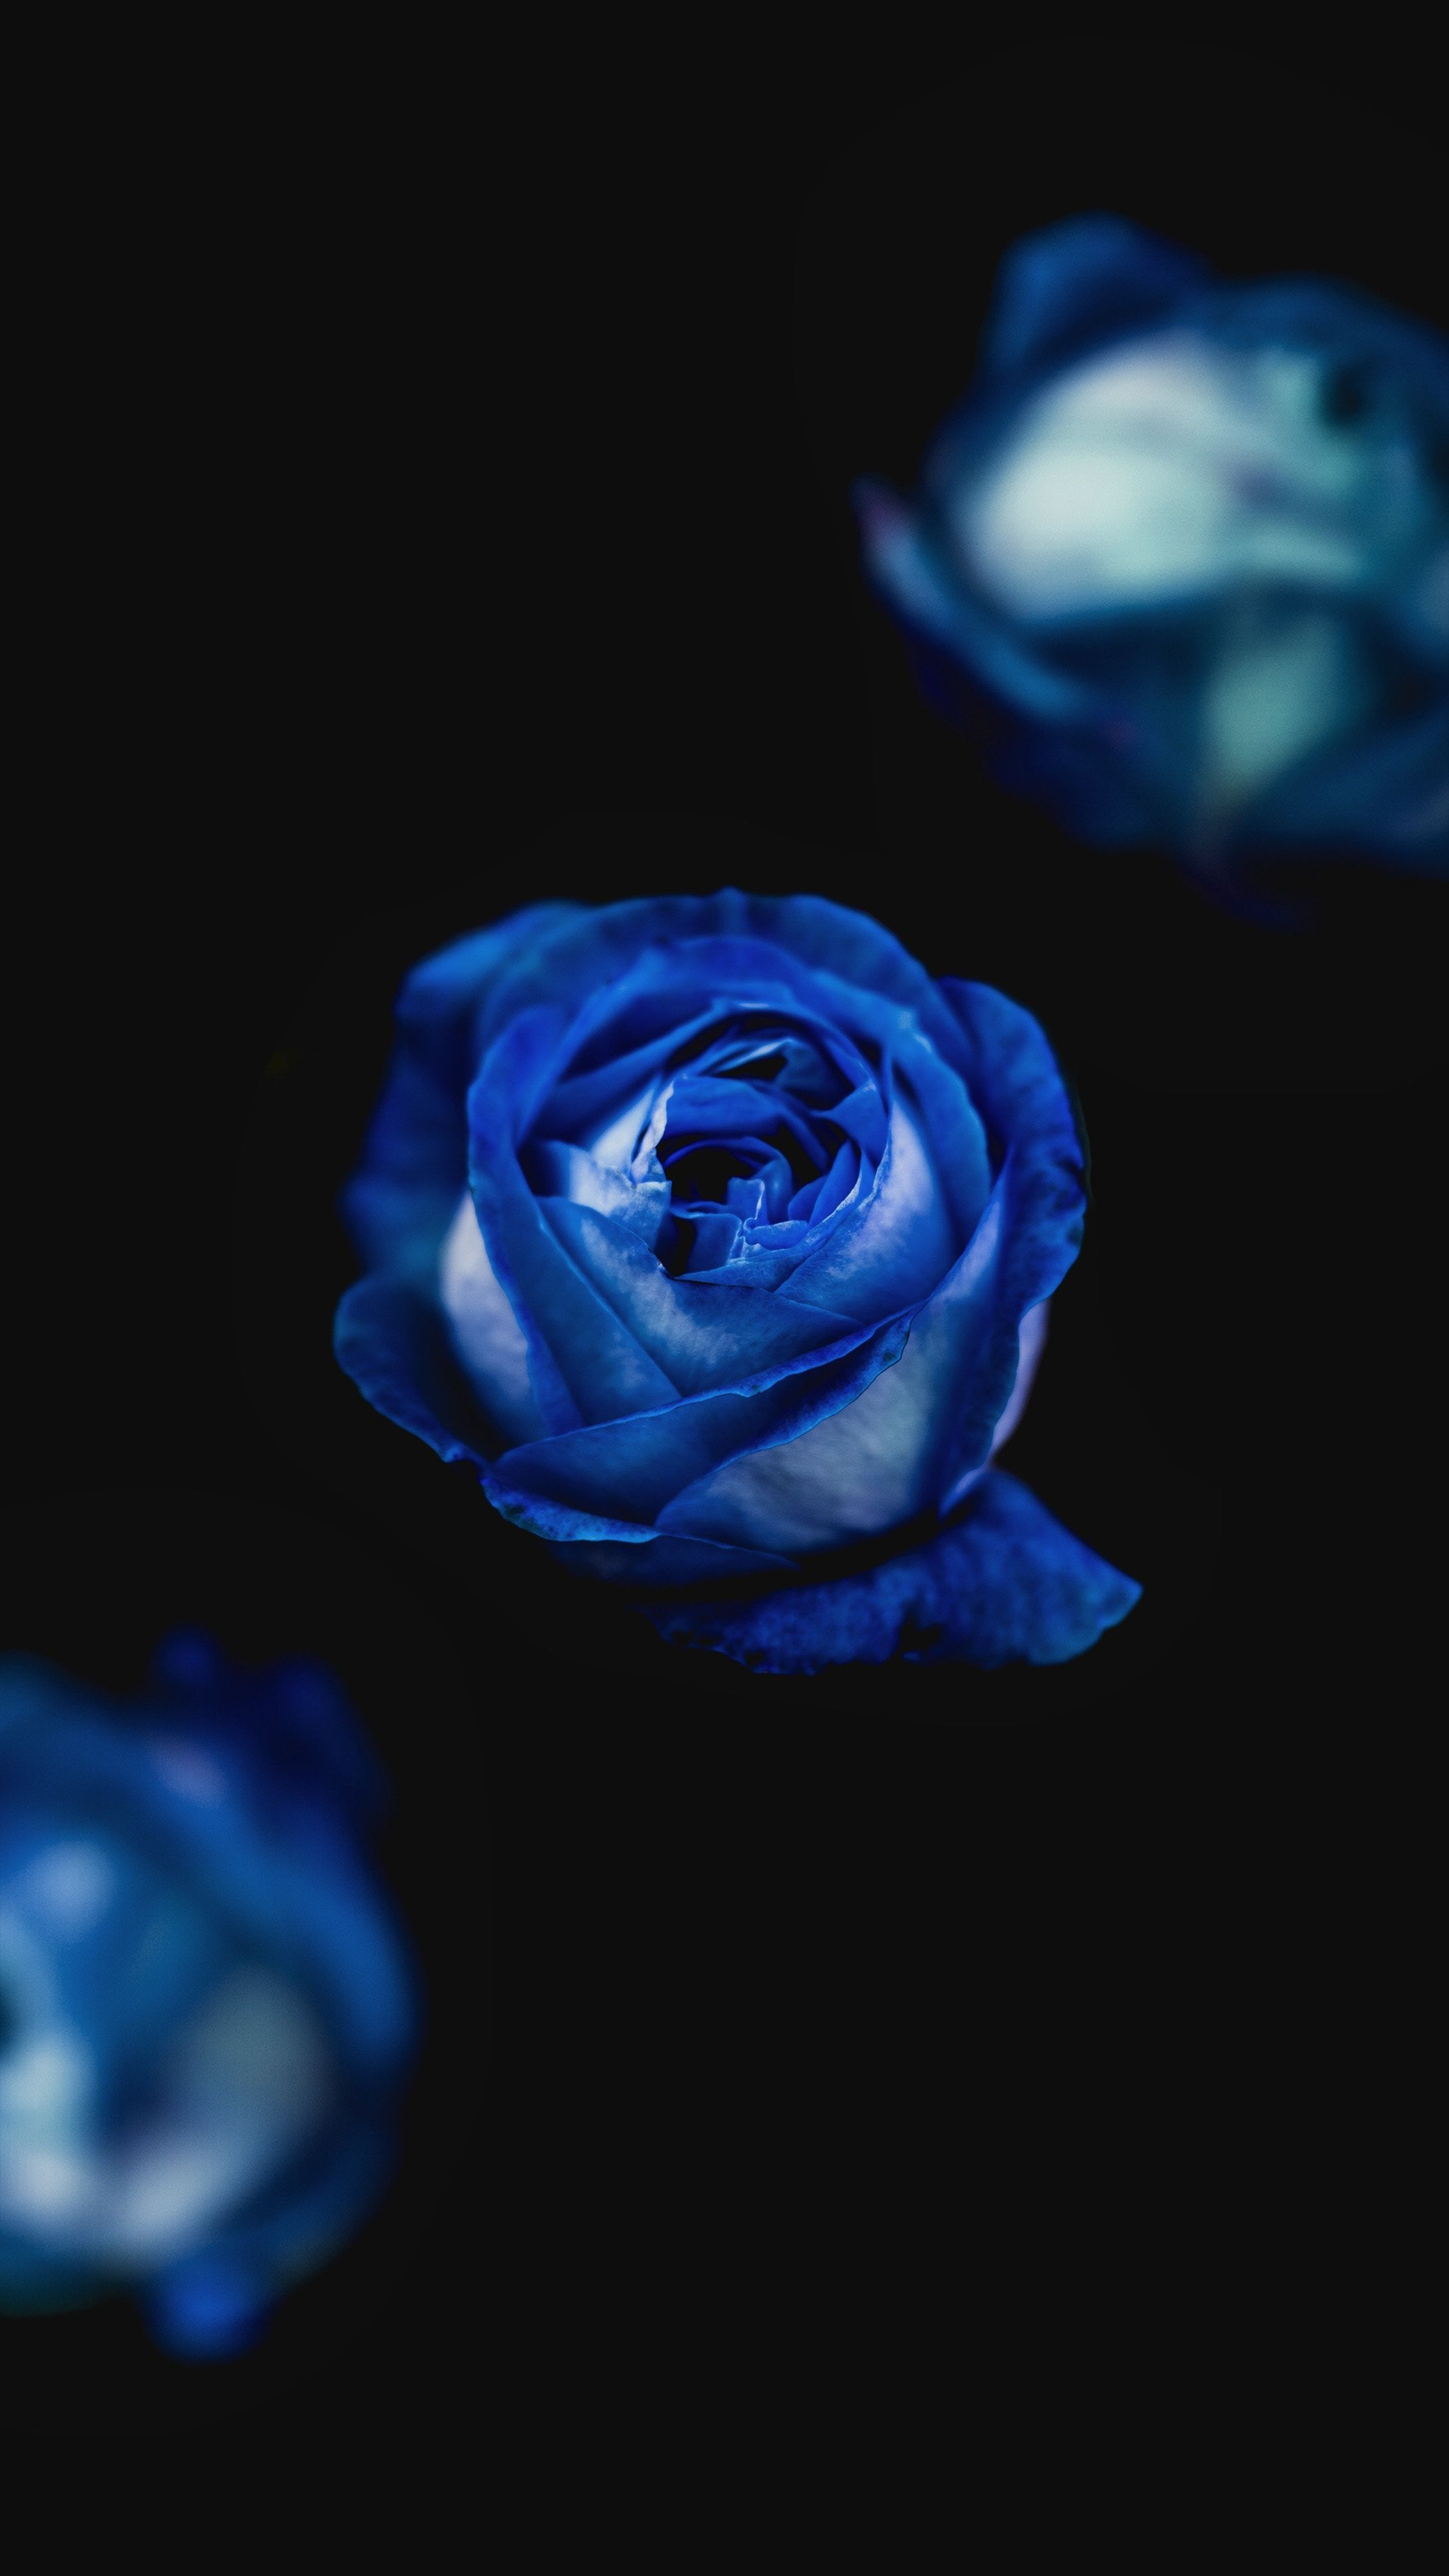 Hd Wallpaper Bluerose Wallpaper Blue Gardenroses Rose Photograph Huawei Download Photo By Acea Alexandru Blue Roses Wallpaper Blue Roses Blue Rose Picture